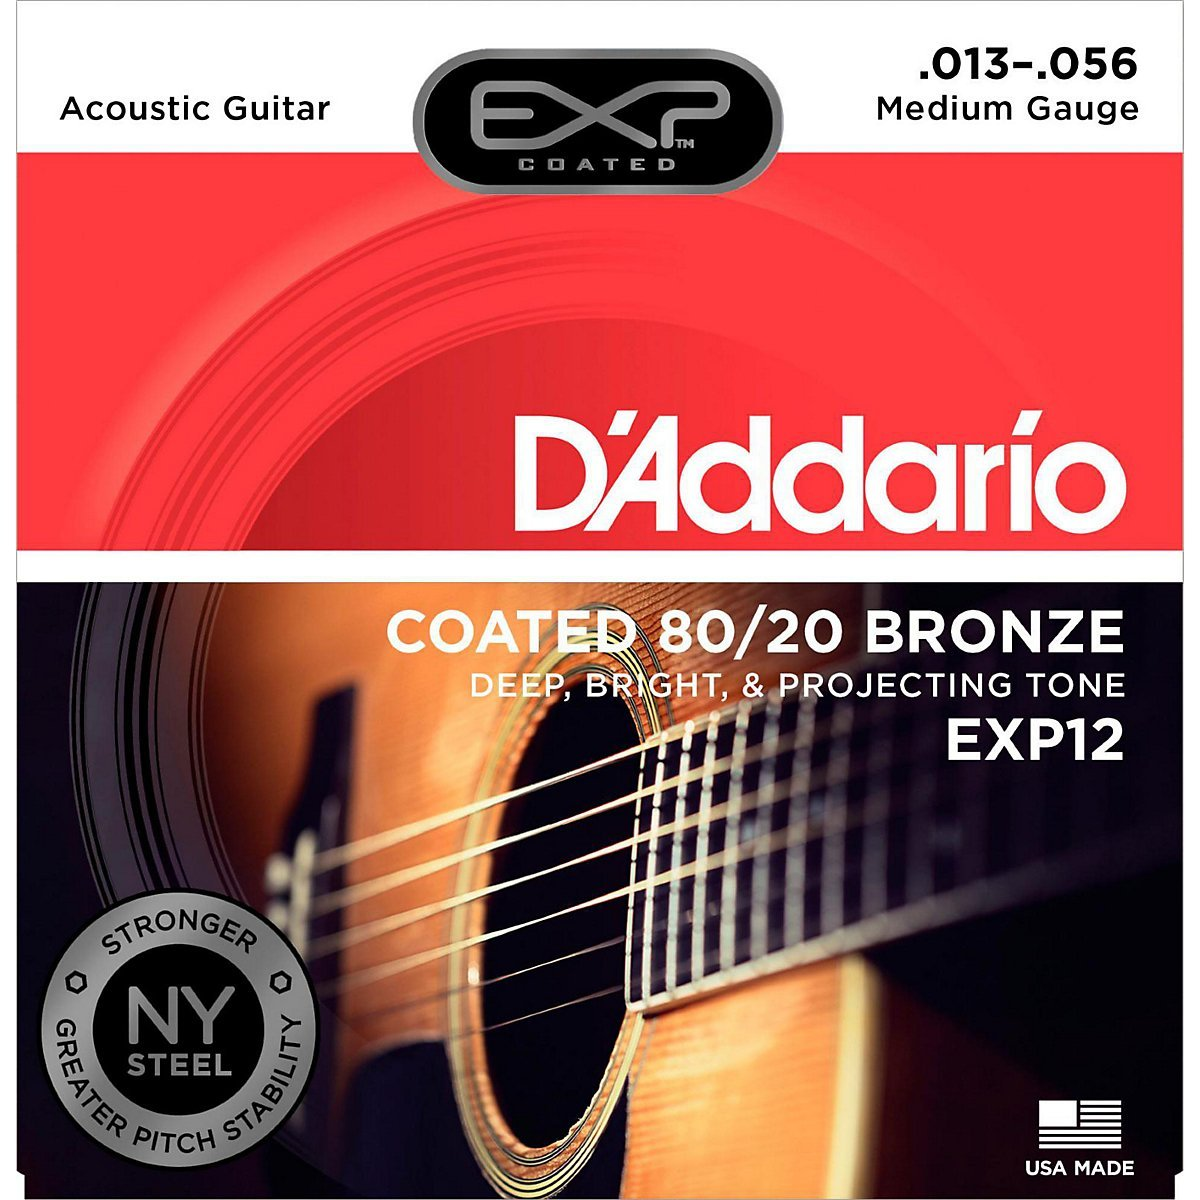 D'Addario EXP12 with NY Steel 80/20 Bronze Acoustic Guitar Strings, Coated Medium, 13-56 i found you exp